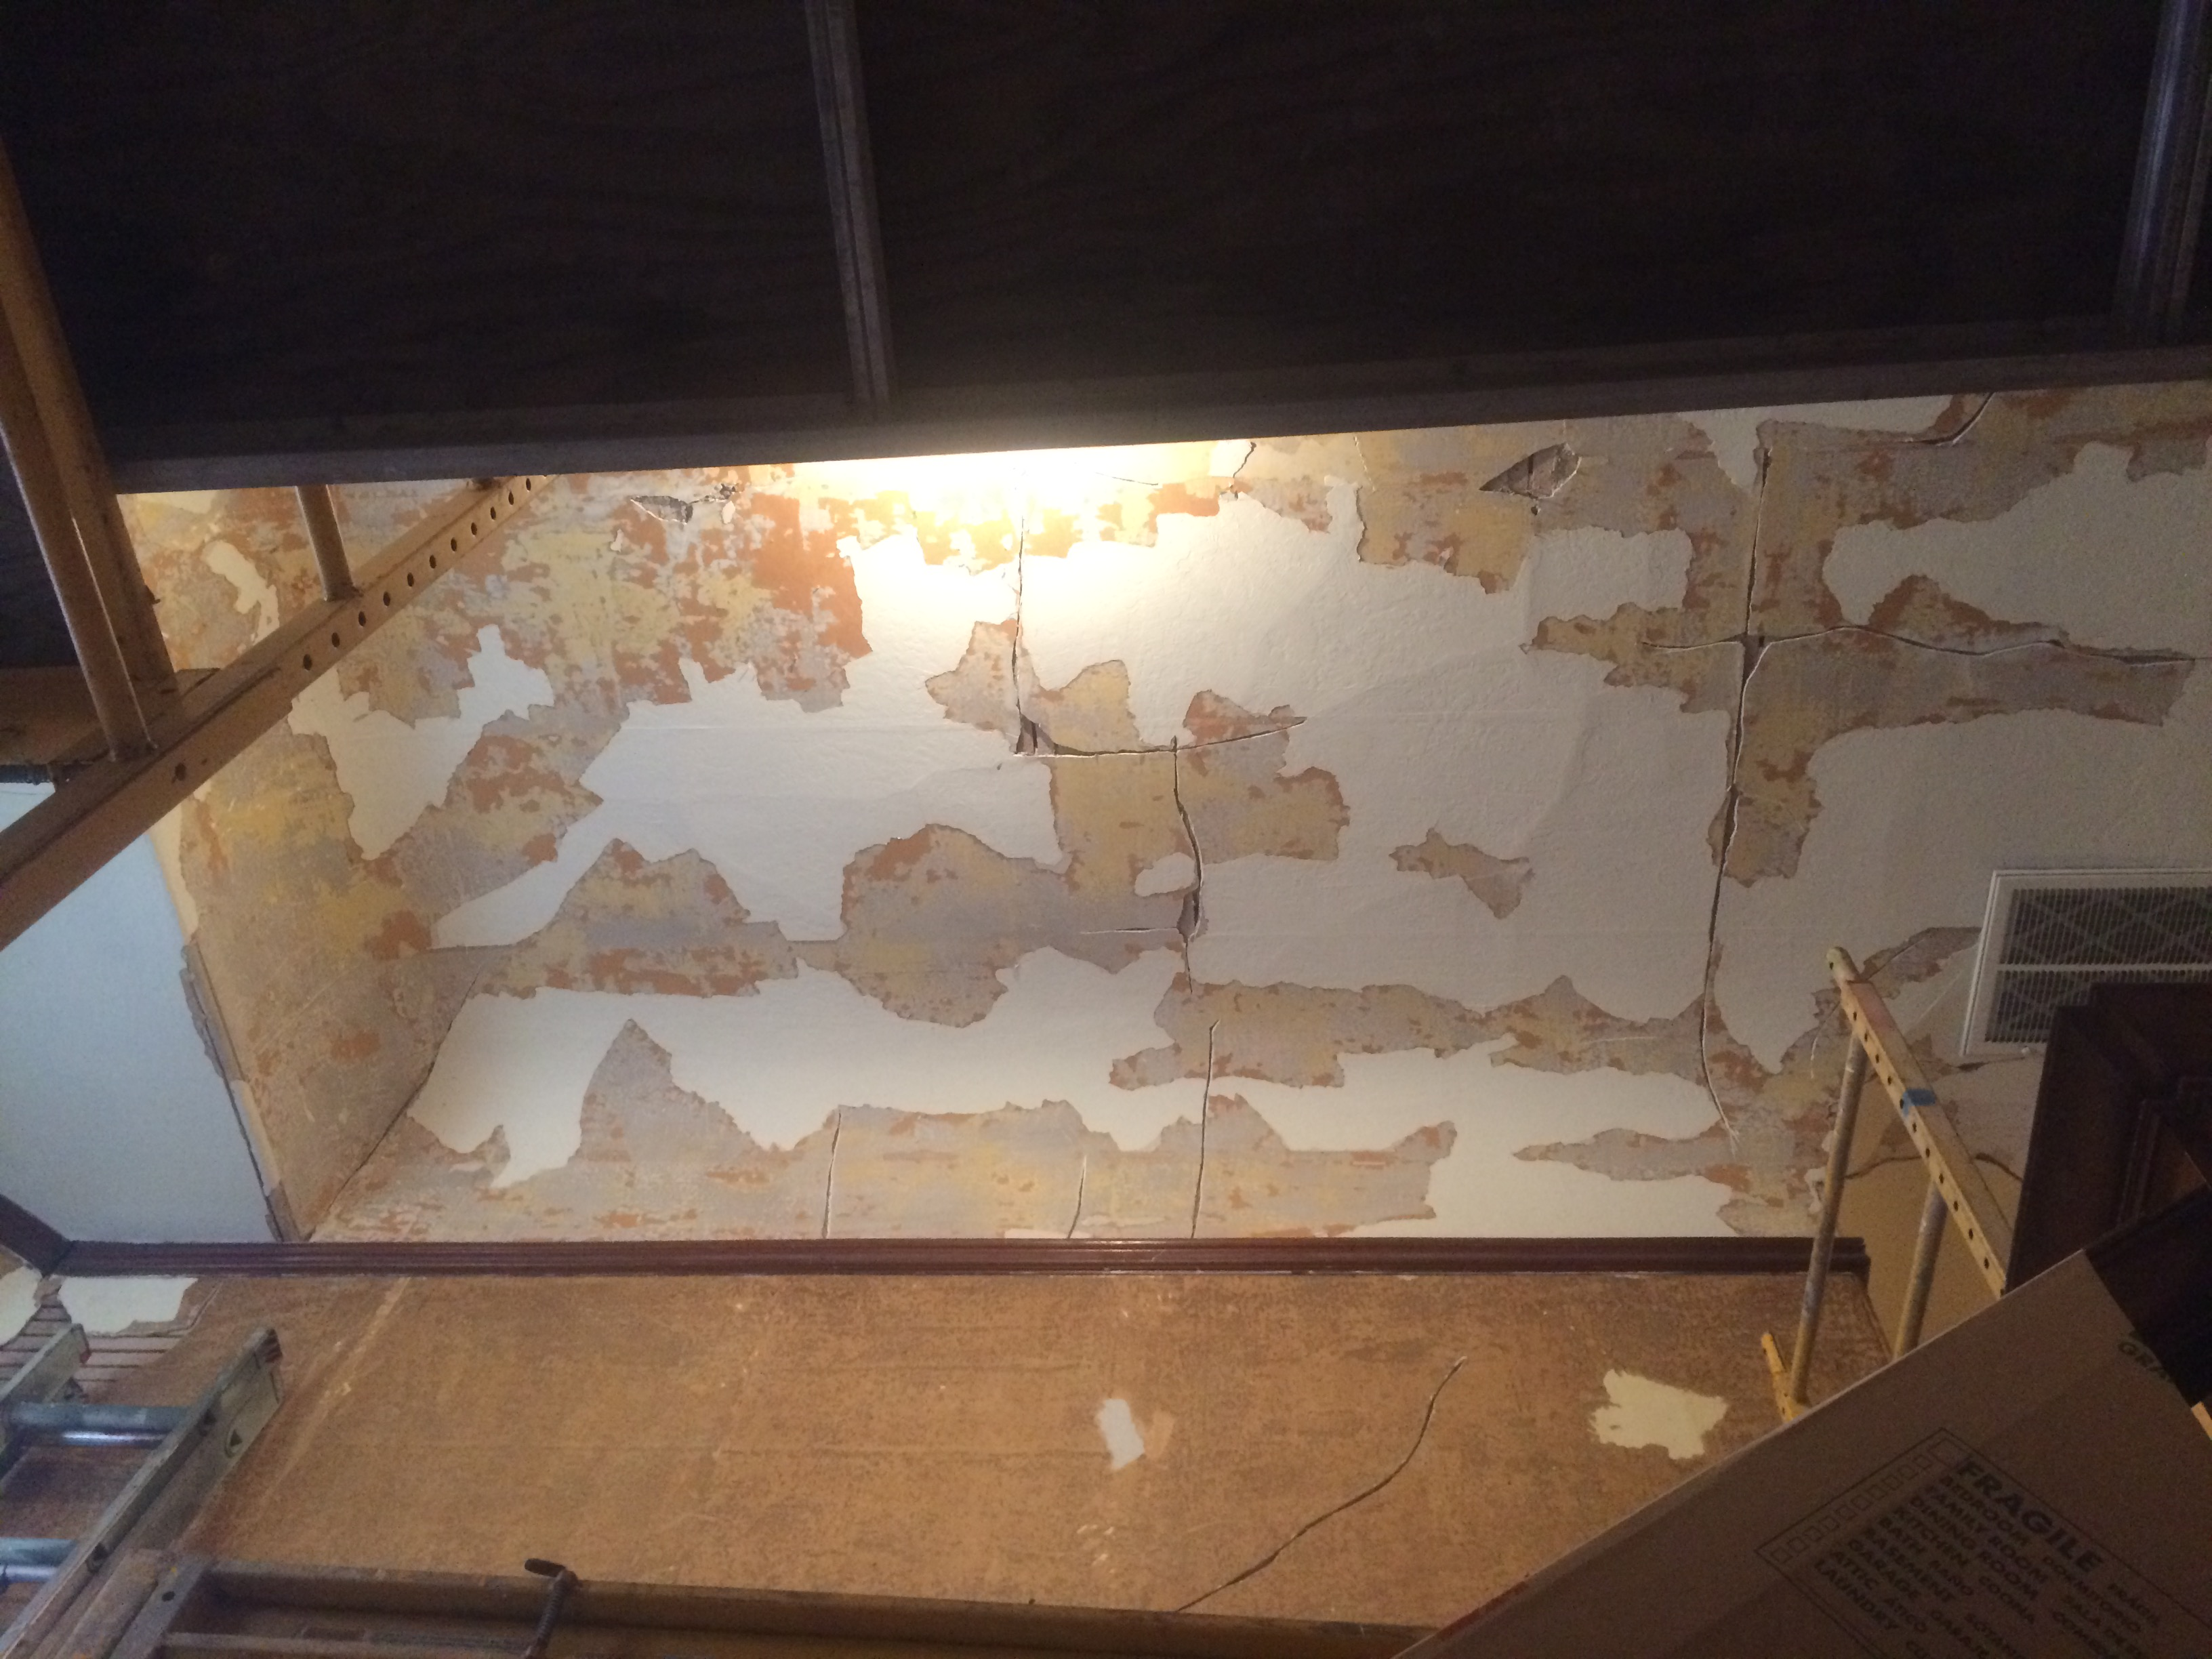 HELP! The entire skim on wallpaper fell off - 100 year old plaster-img_6327.jpg